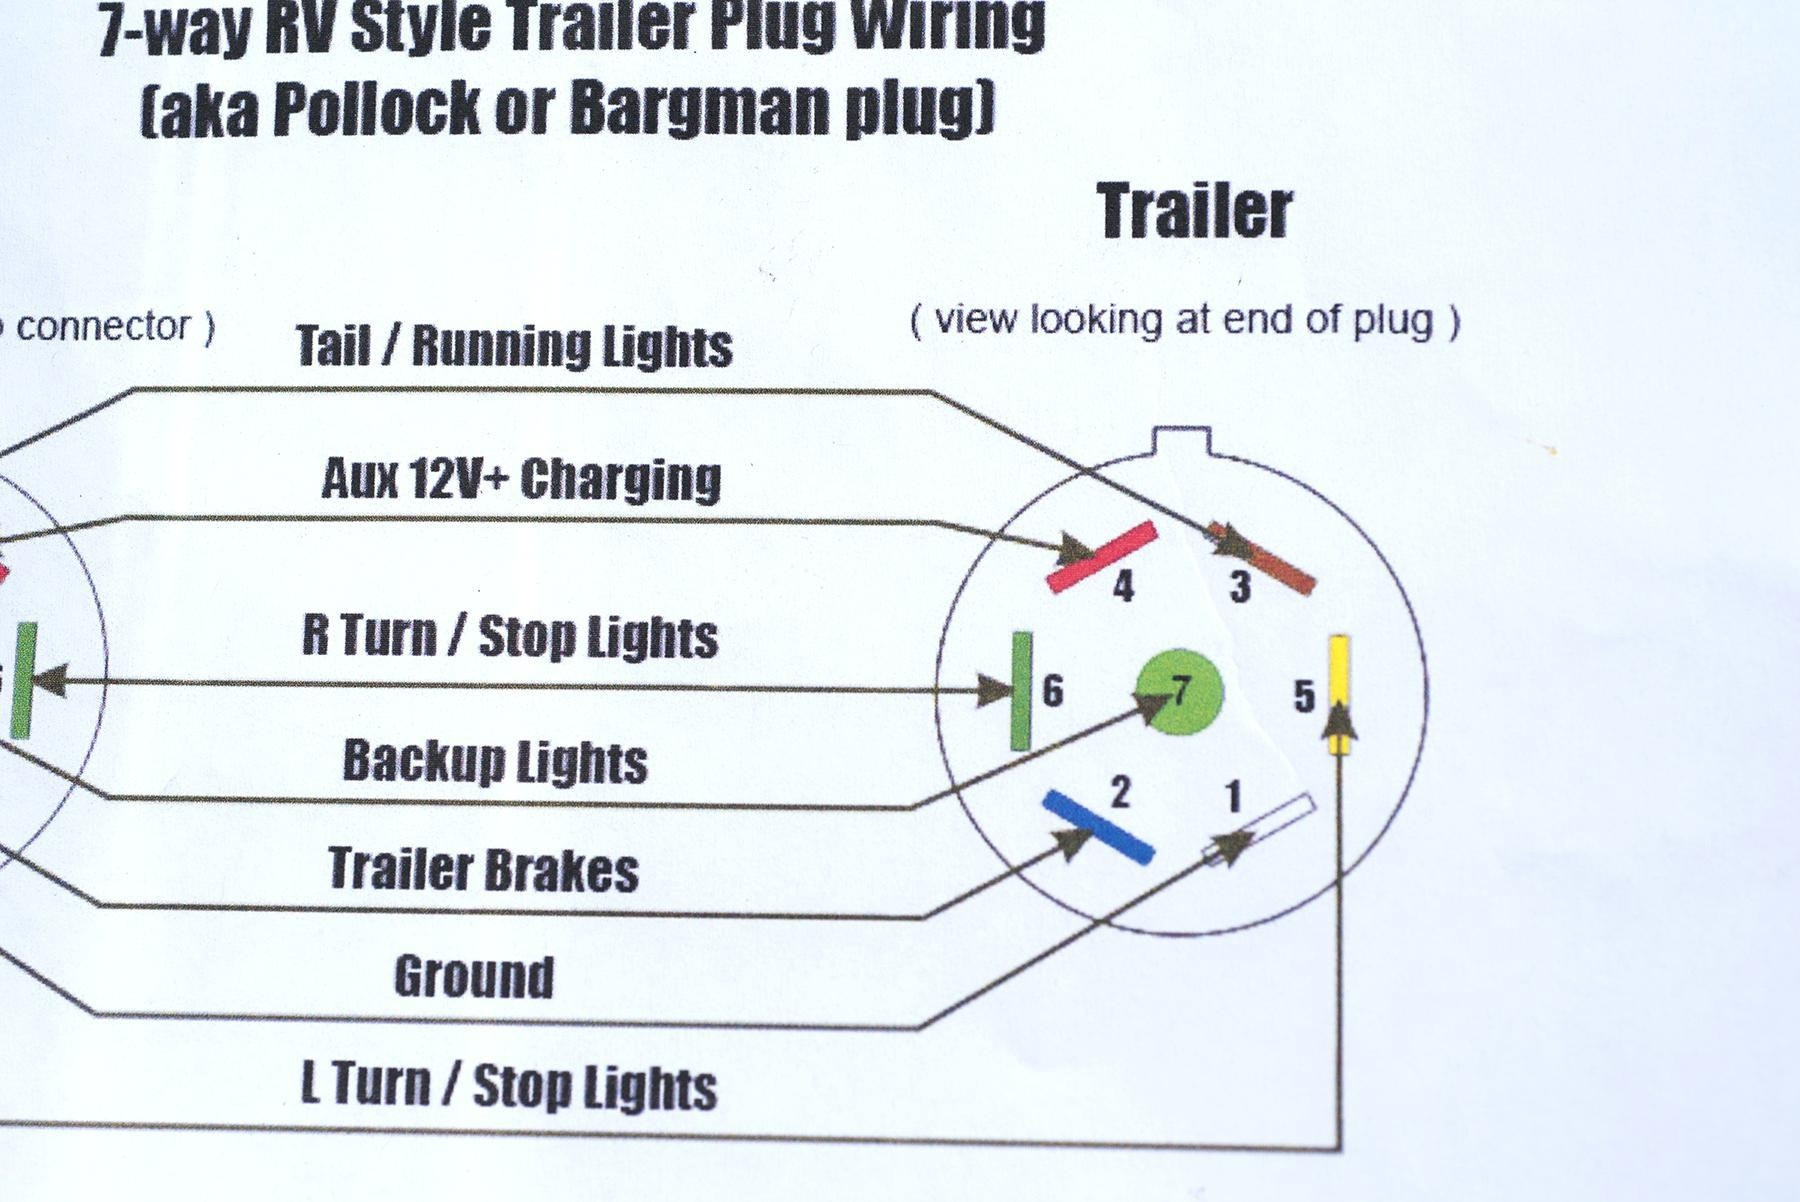 4 Pin Trailer Wiring Diagram Chevy - Wiring Diagram Explained - Trailer Wiring Diagram 7 Pin Round